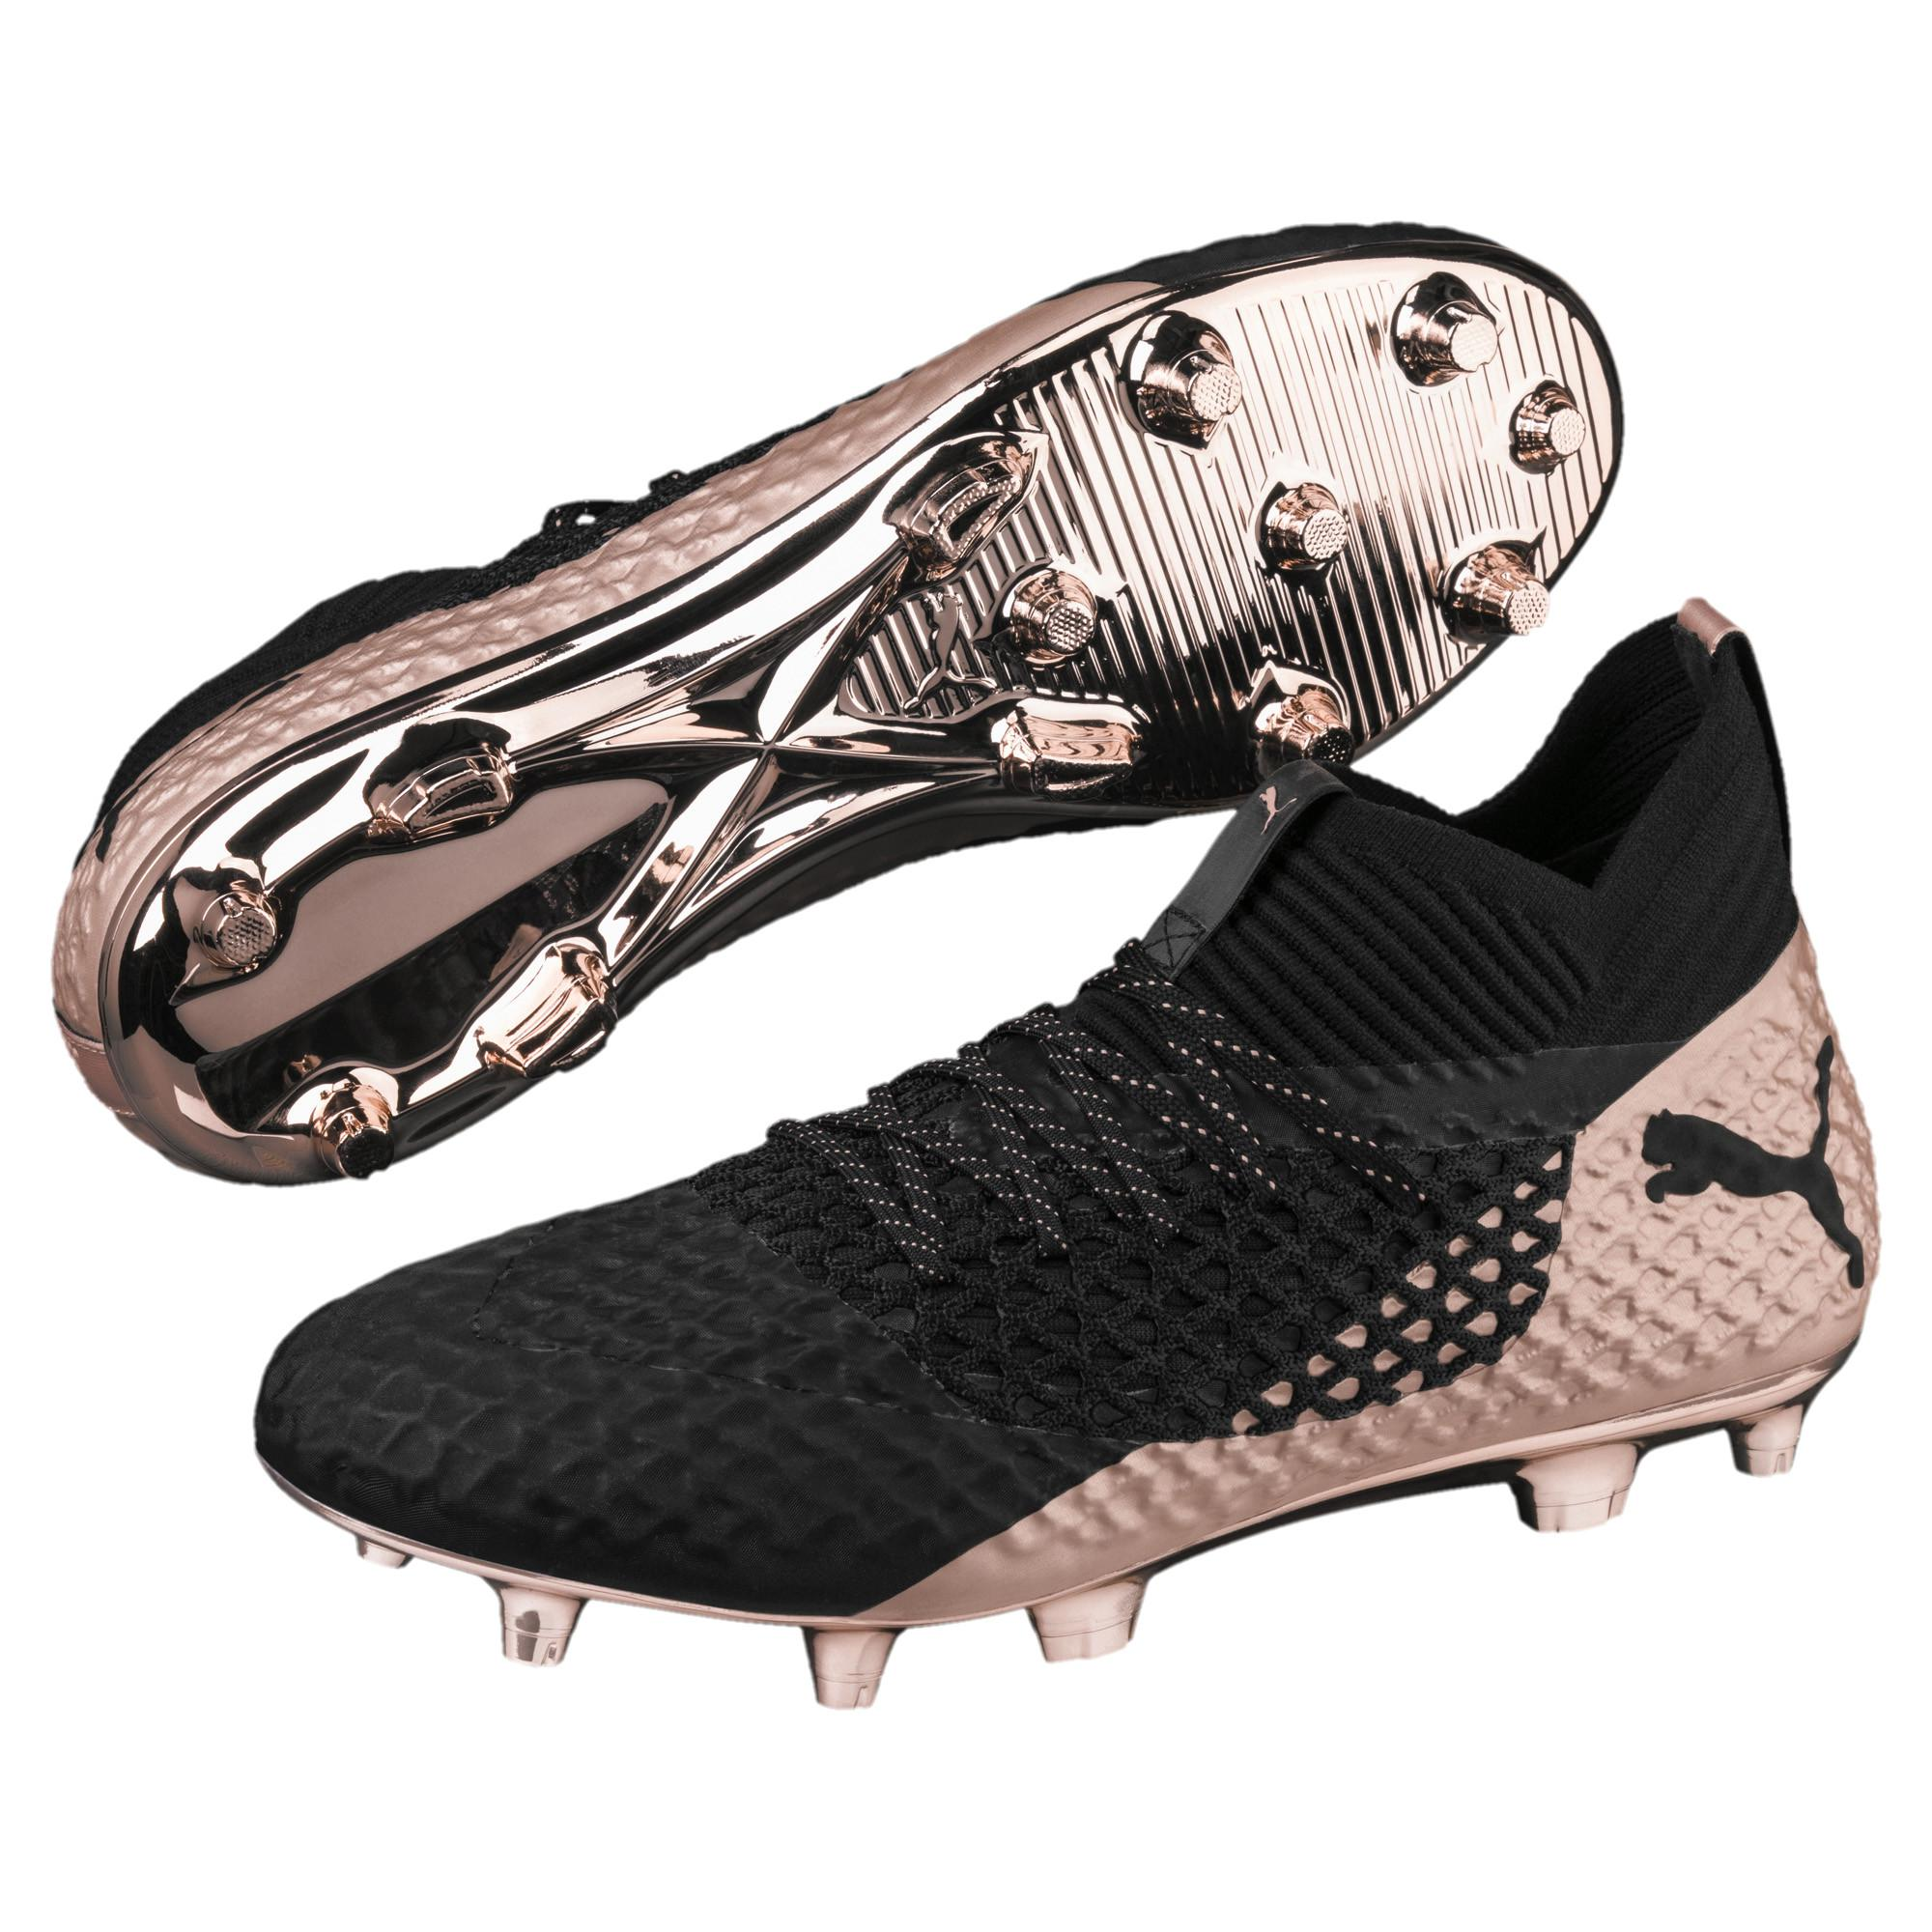 ae6465137 PUMA Future 2.1 Netfit Glo Fg ag Men s Soccer Cleats in Black for ...